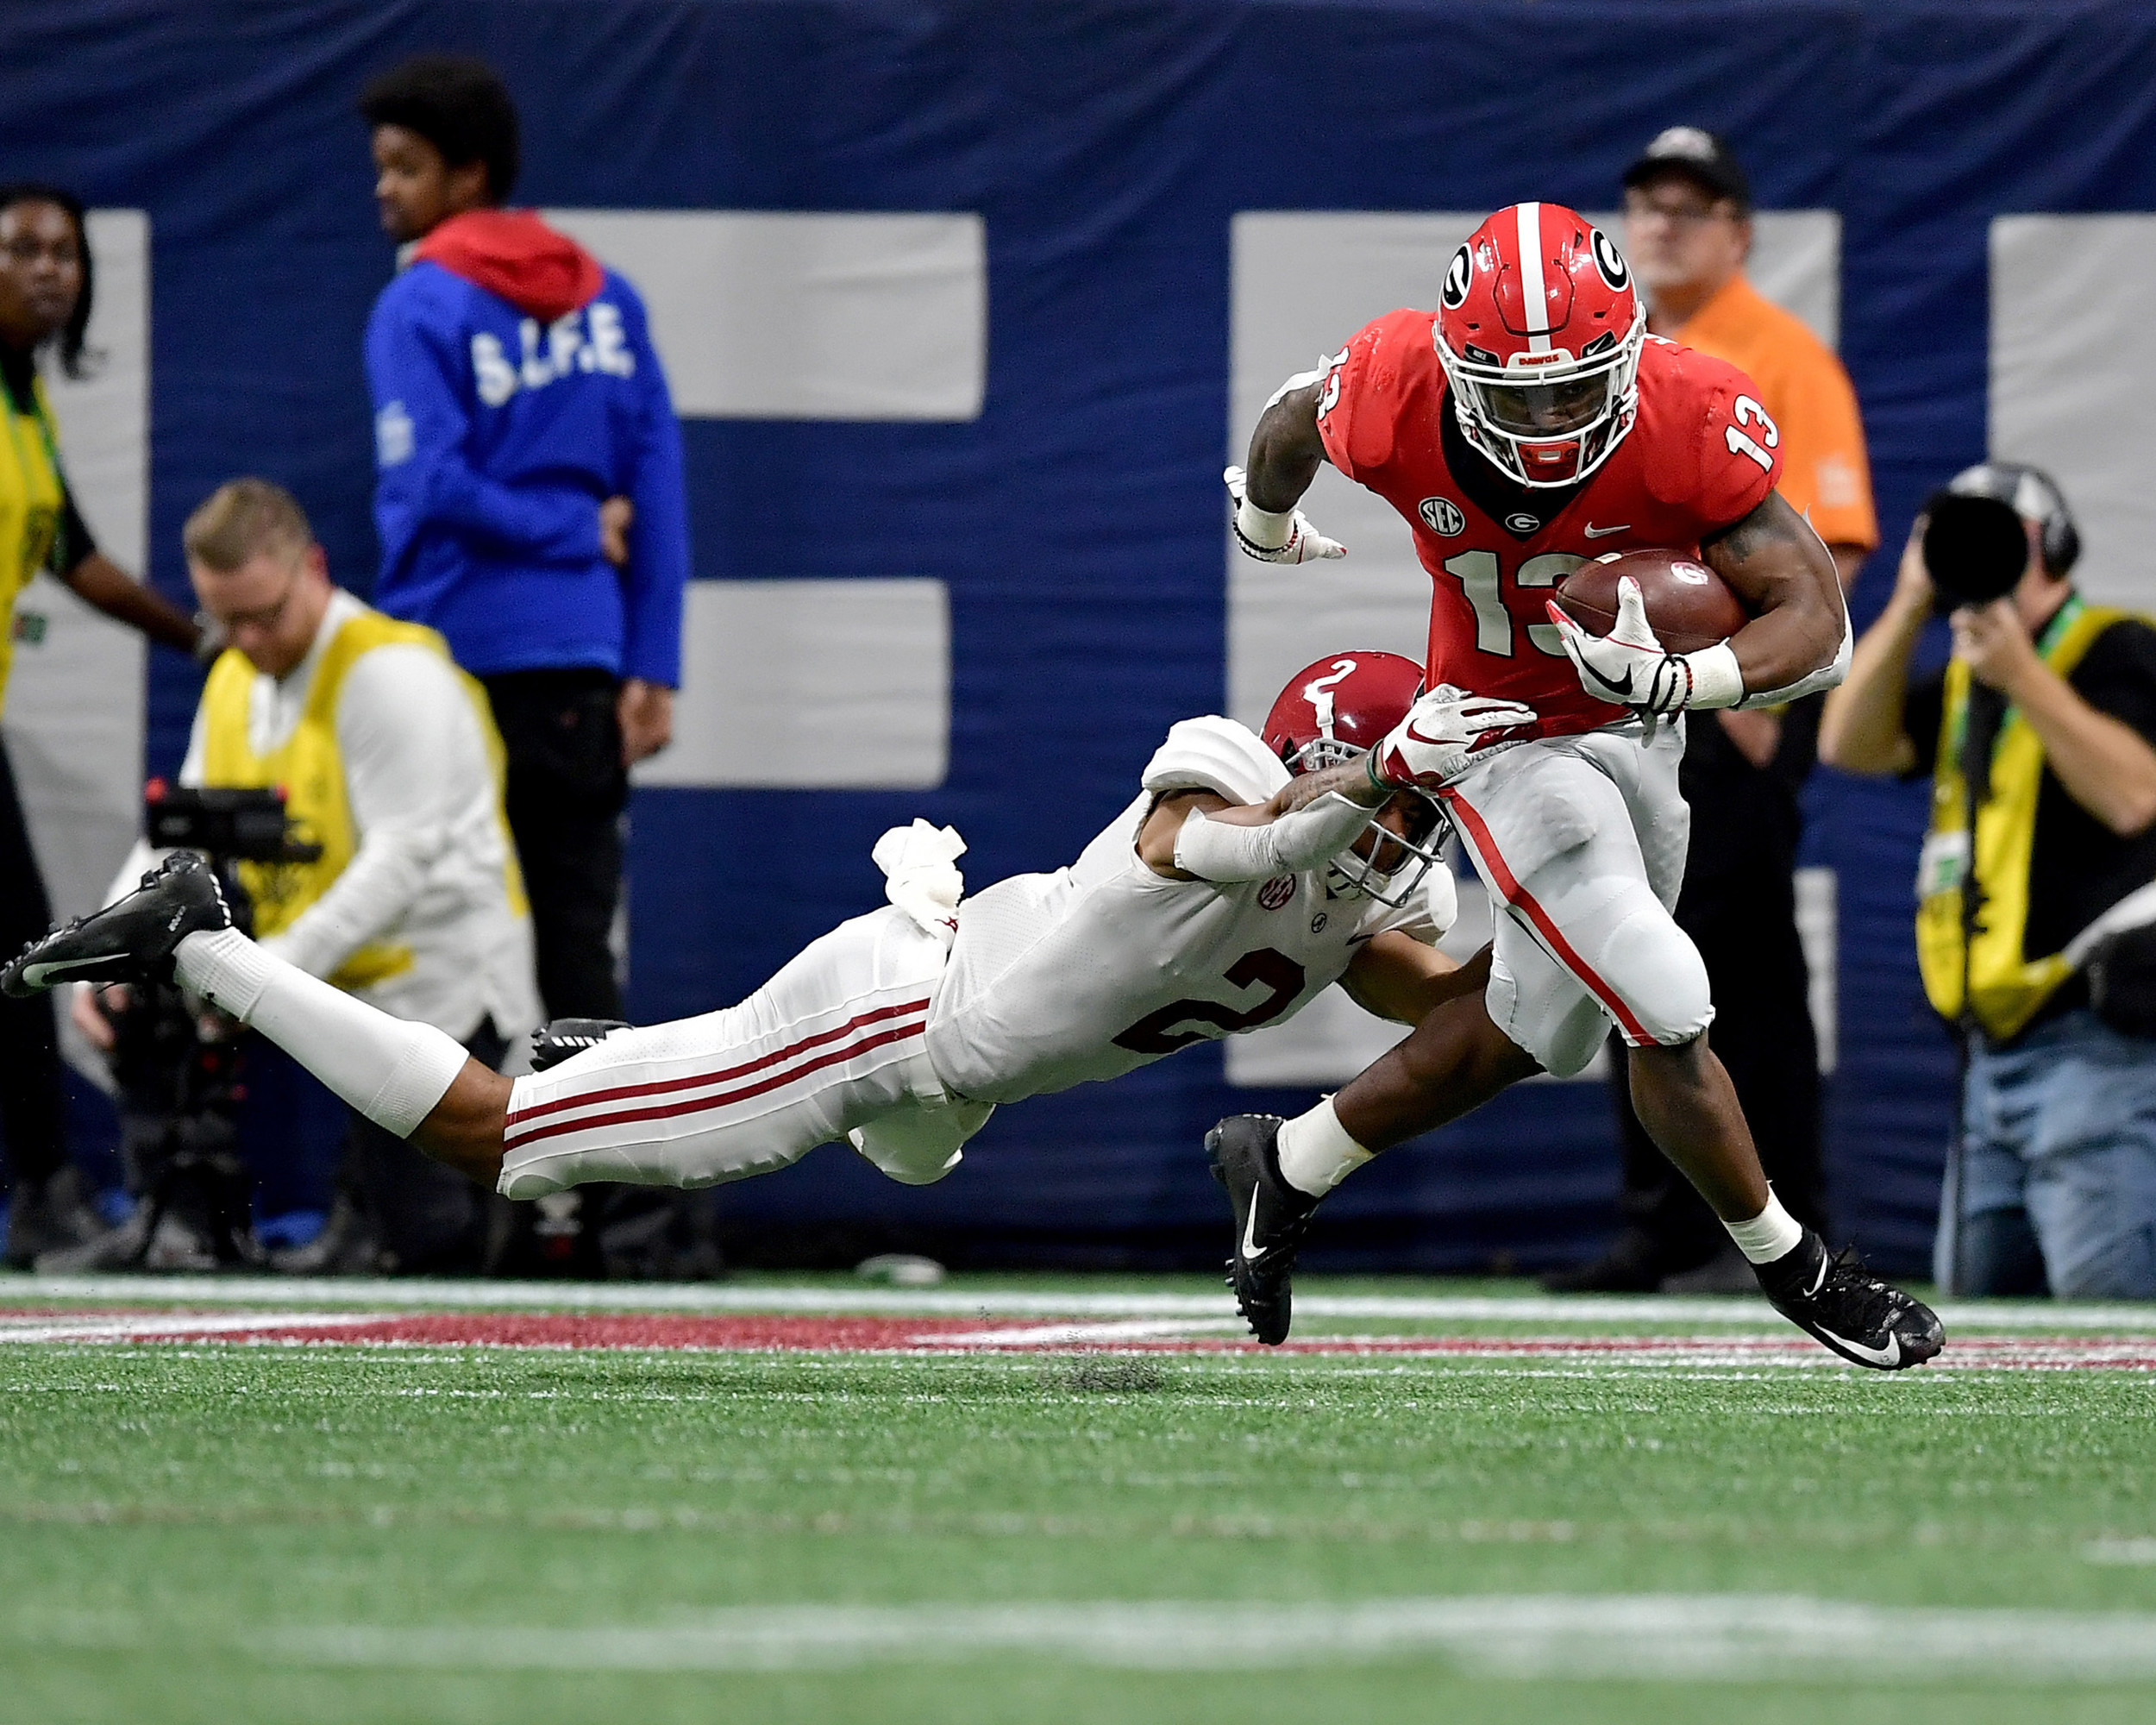 Alabama Crimson Tide defensive back Patrick Surtain II (2) misses the tackle of Georgia Bulldogs running back Elijah Holyfield (13) during the second half of the 2018 SEC Championship football game at Mercedes-Benz Stadium in Atlanta, Ga., on Dec. 1, 2018. Alabama wins 35-28. (Photo by Lee Walls)